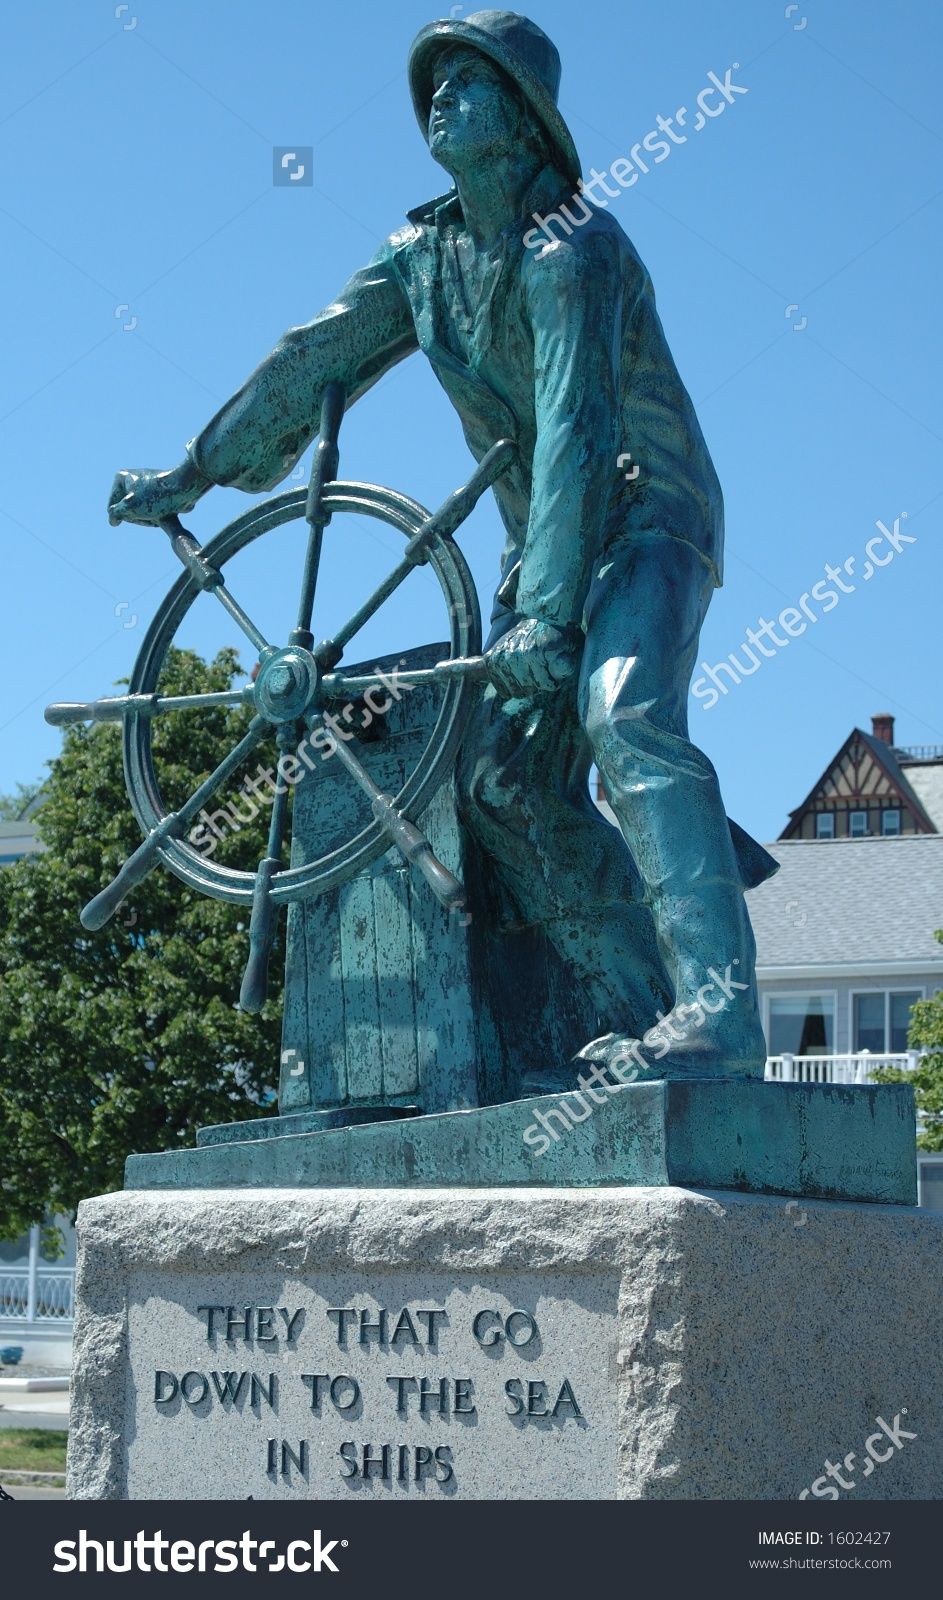 Fisherman Statue Gloucester Ma Stock Photo 1602427.